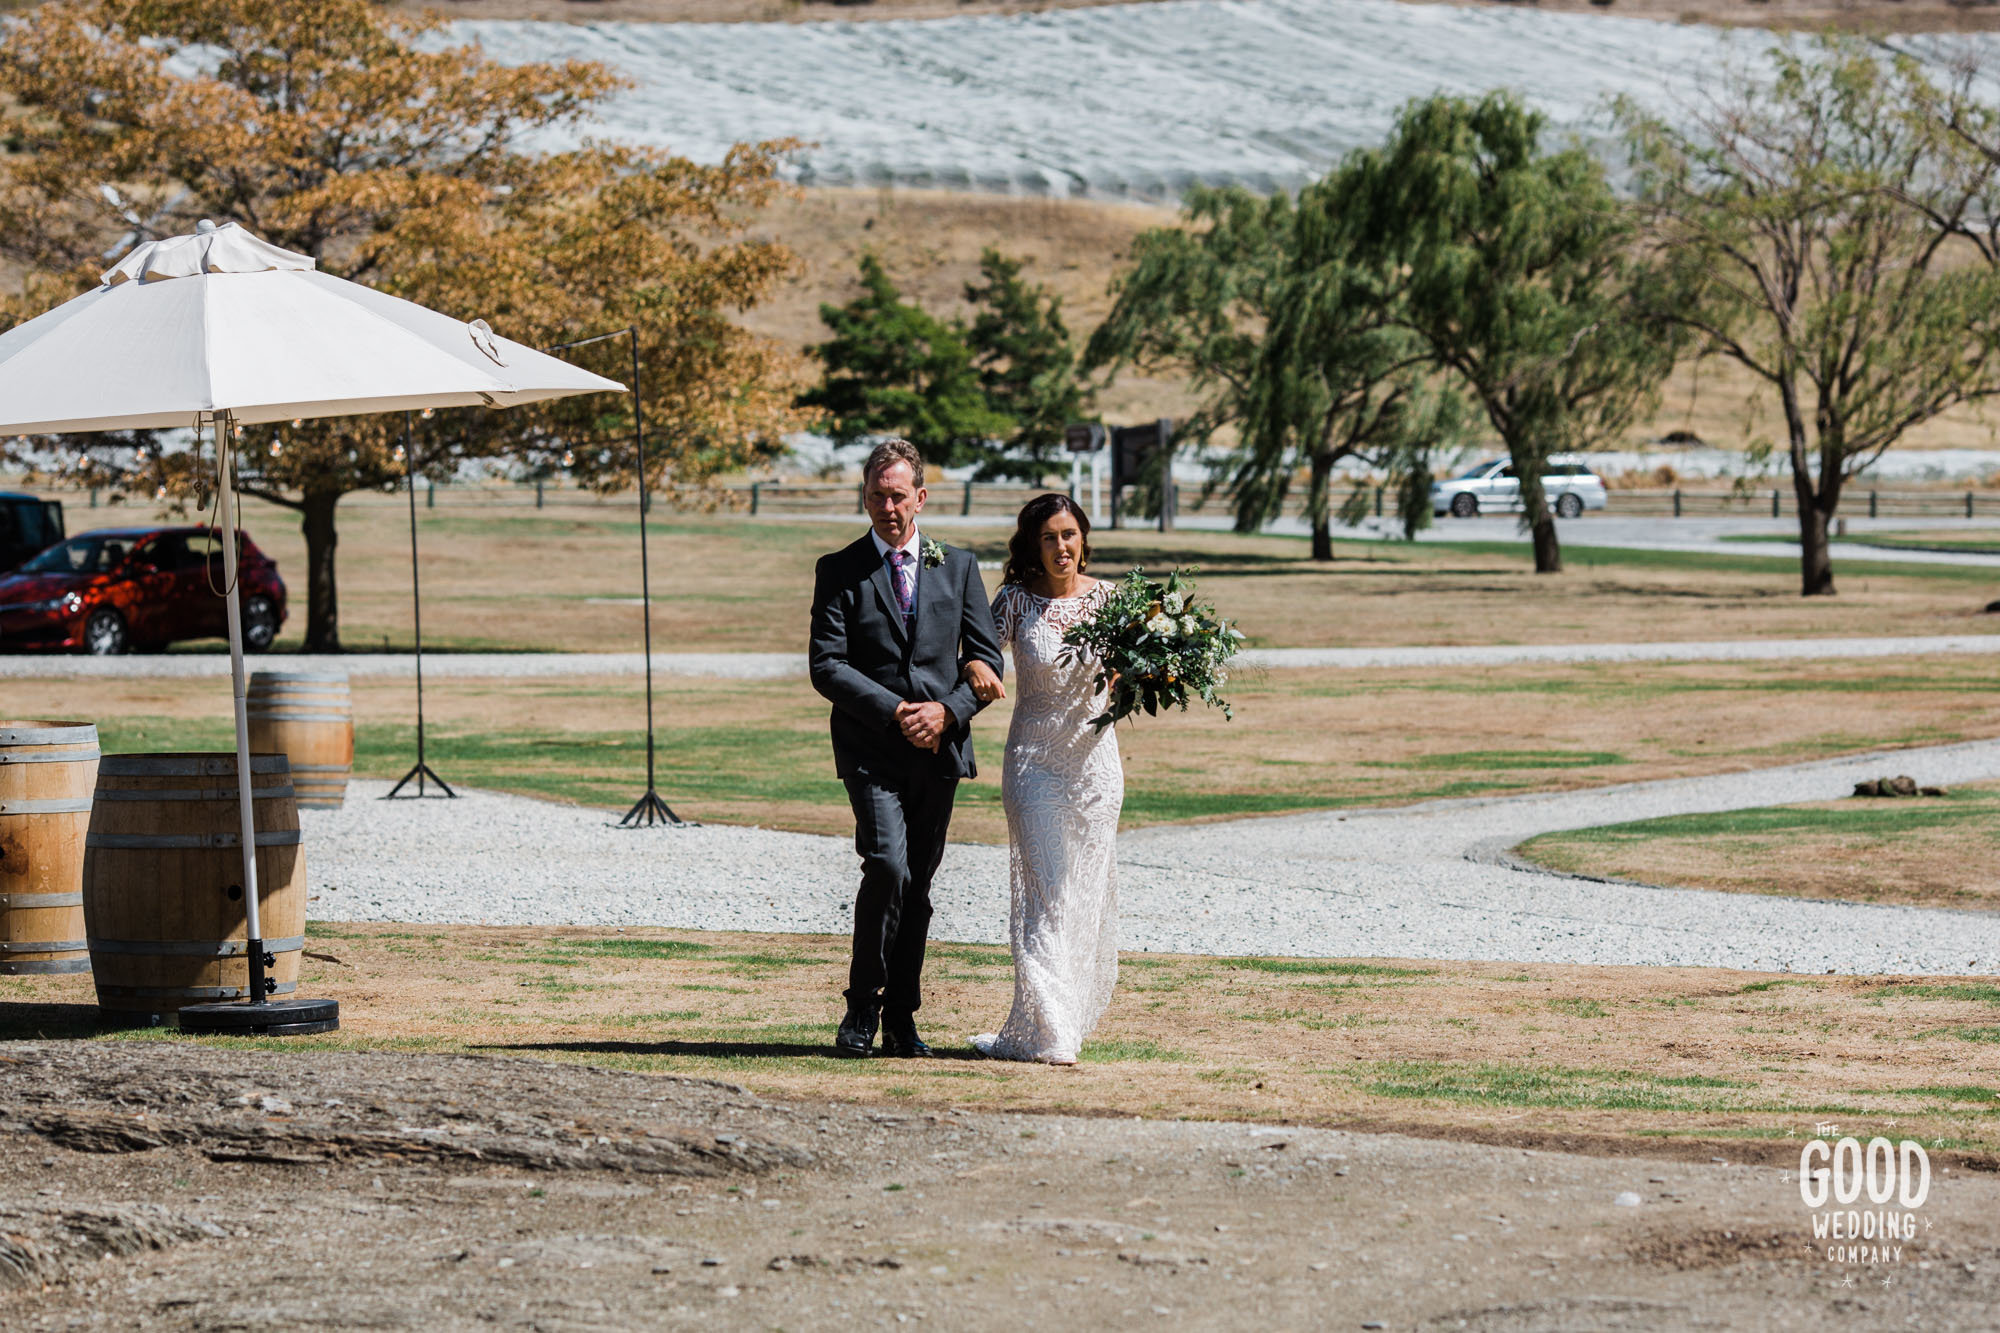 The-Good-Wedding-Company-LaurenLukas-Peregrine-Winery-Wanaka-Photographer-144.jpg